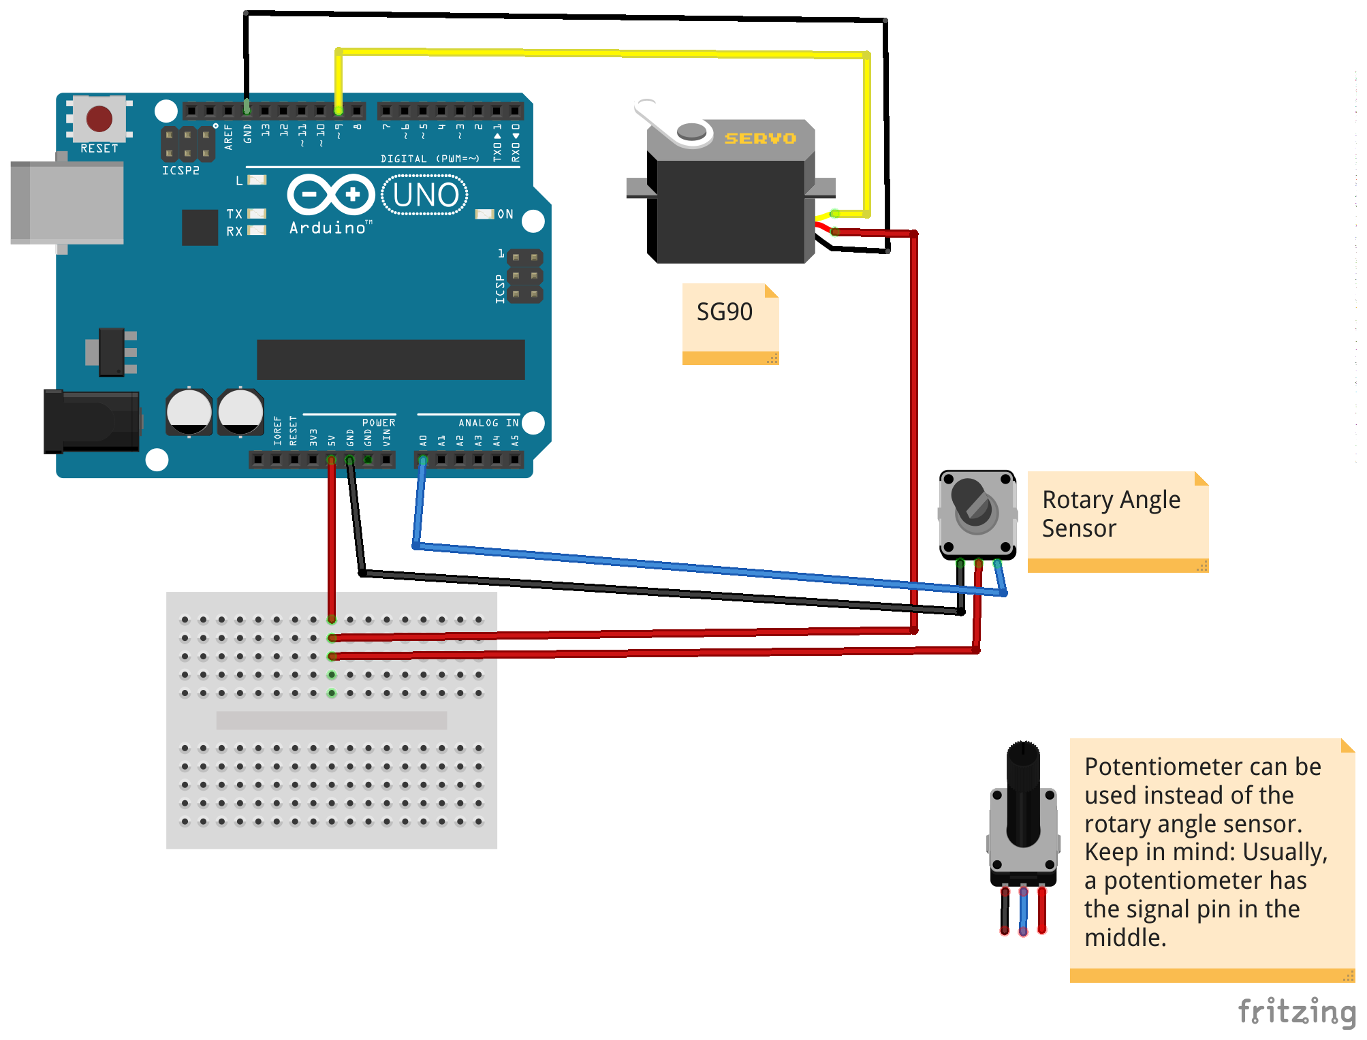 Wiring For Digital Servos Diagram Services Rc Servo Tutorial How To Control A Motor Sg90 With The Arduino Uno Rh Mschoeffler De Signal Wire